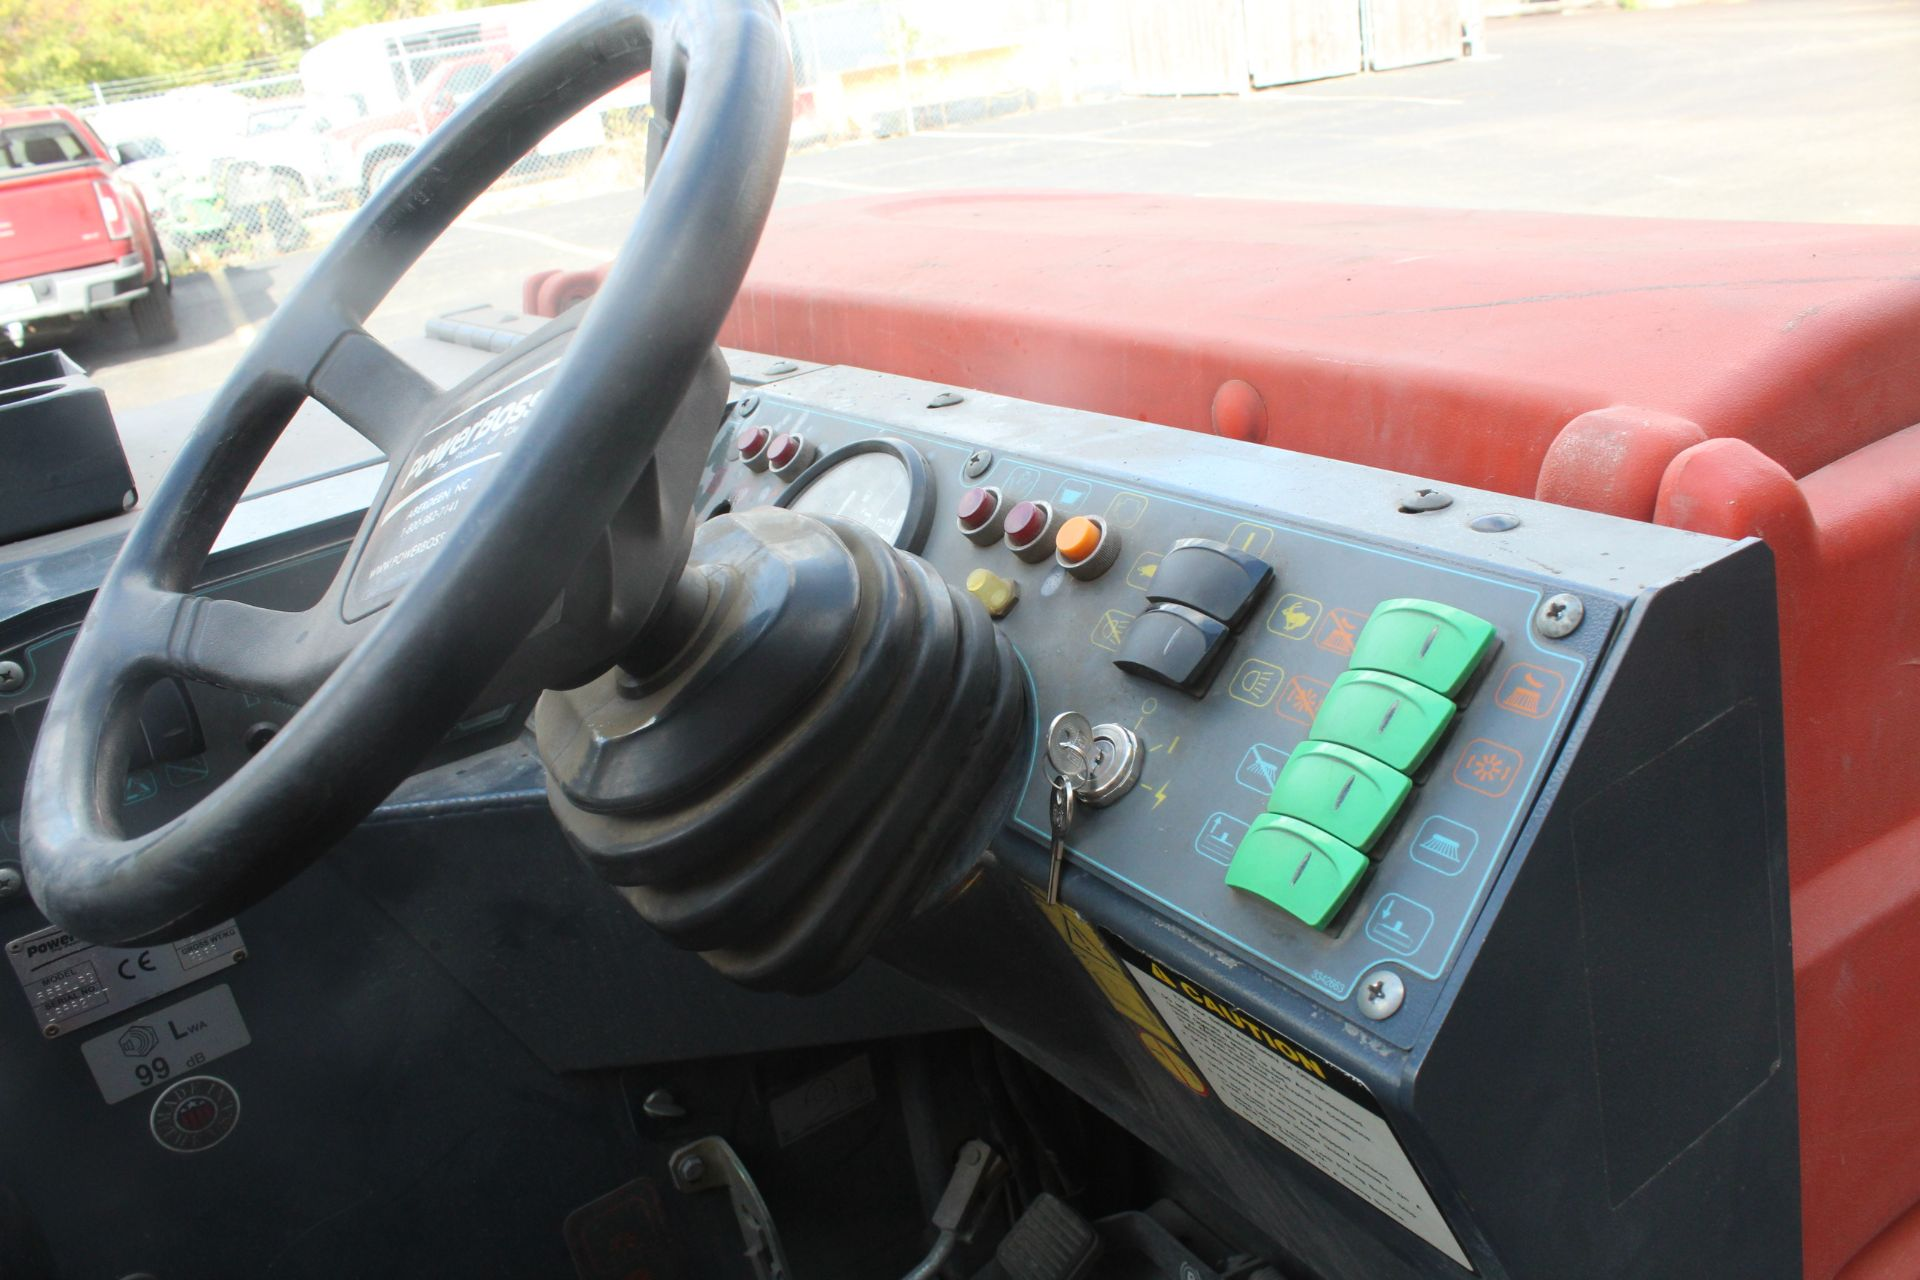 POWERBOSS CORE 50 RIDE ON SWEEPER SCRUBBER - Image 5 of 6